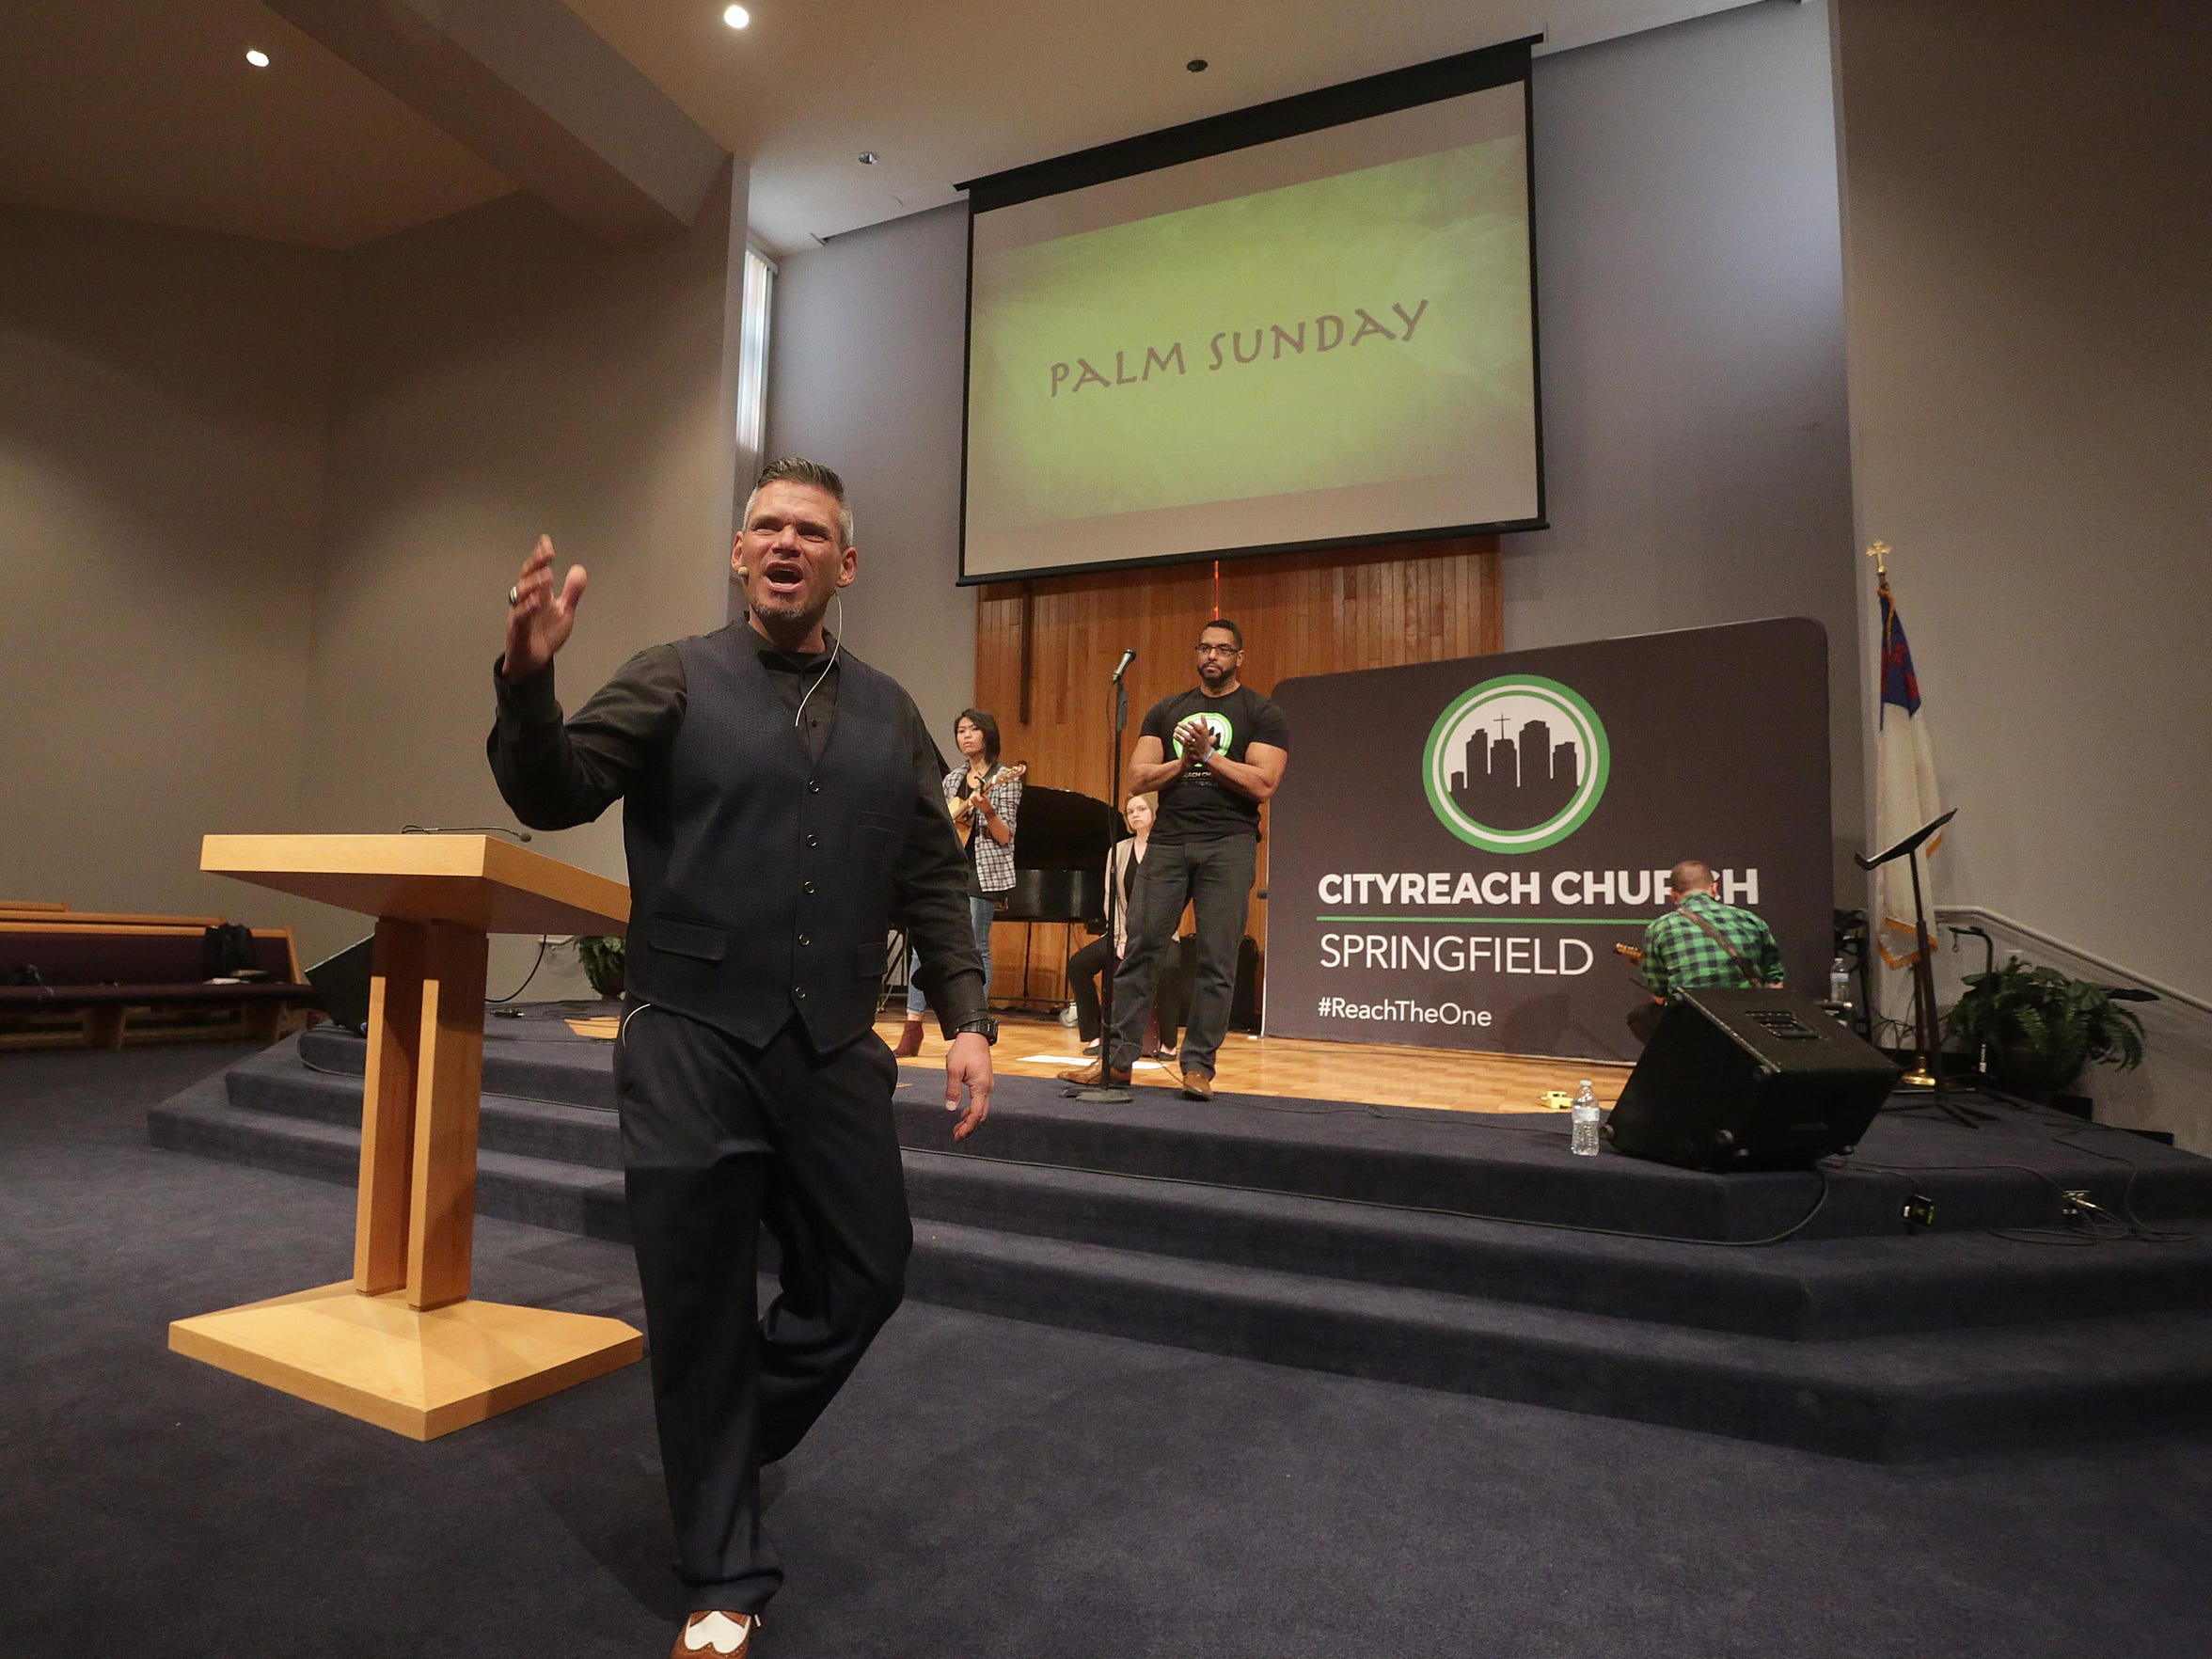 Newly formed CityReach Church is led by Pastor John Alarid and his wife, Hannah. Pastor John Alarid delivers a passionate sermon.